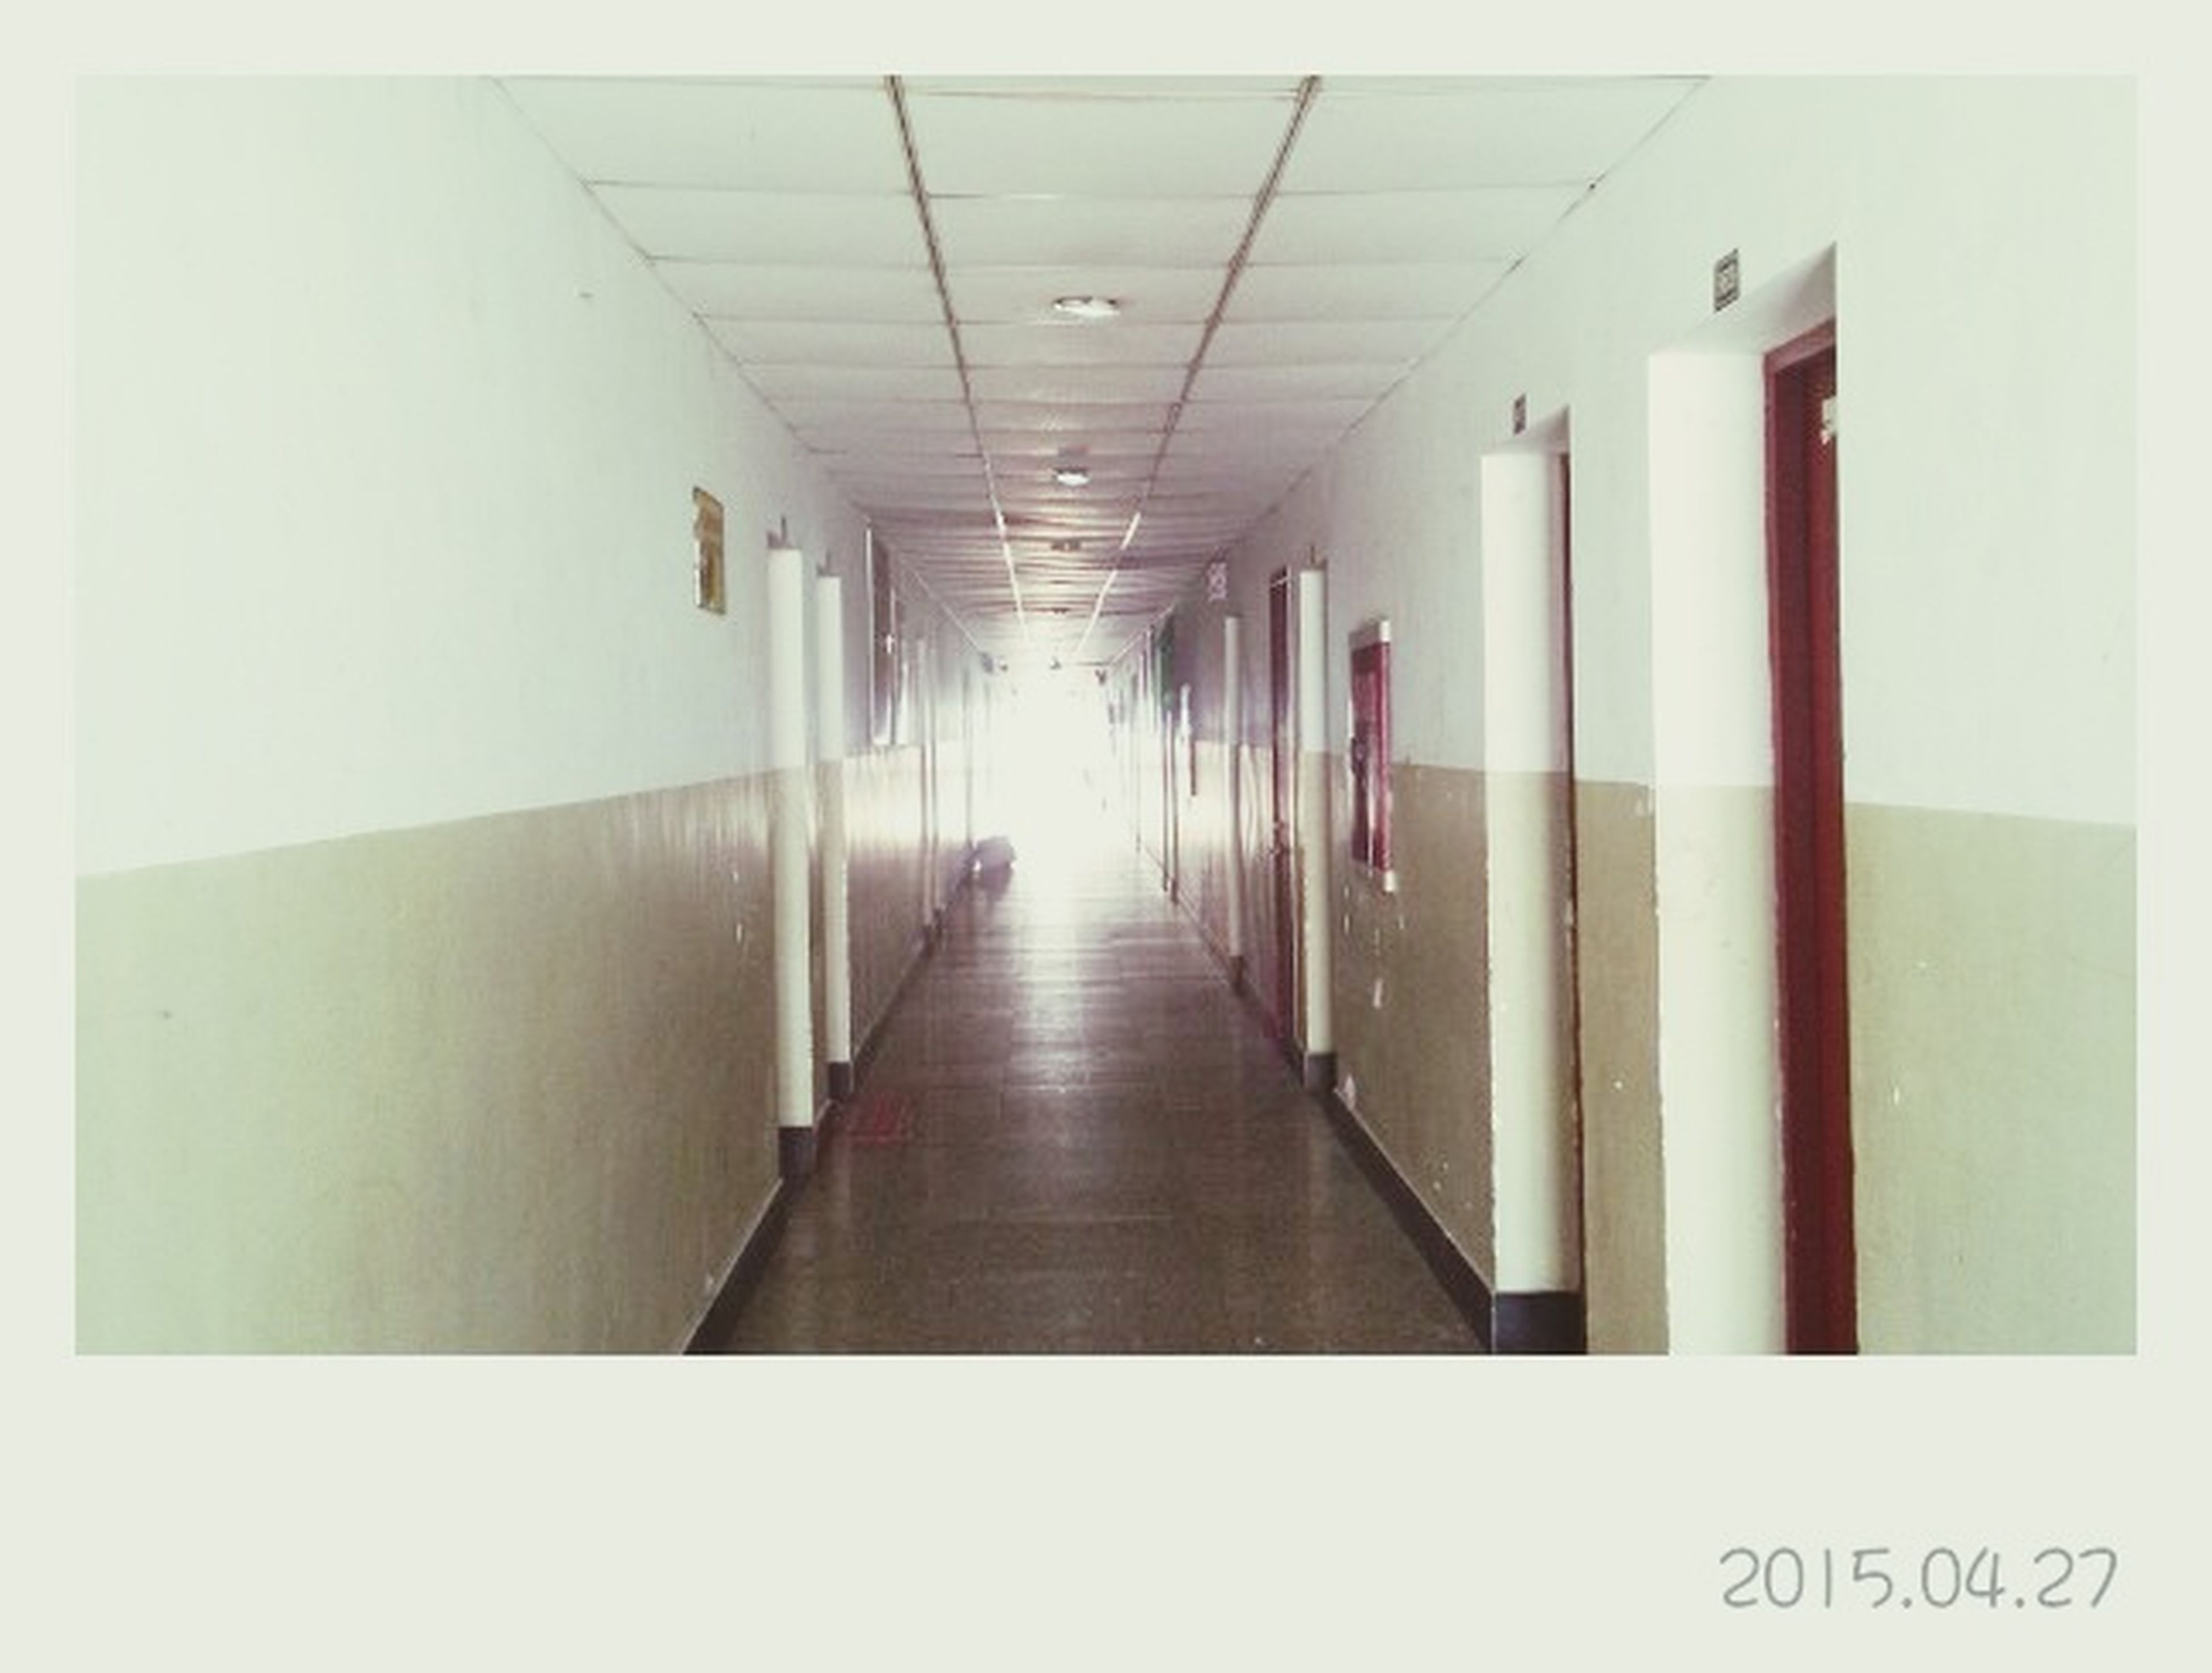 indoors, corridor, the way forward, architecture, diminishing perspective, built structure, in a row, ceiling, empty, narrow, absence, vanishing point, flooring, modern, long, tiled floor, no people, building, wall, repetition